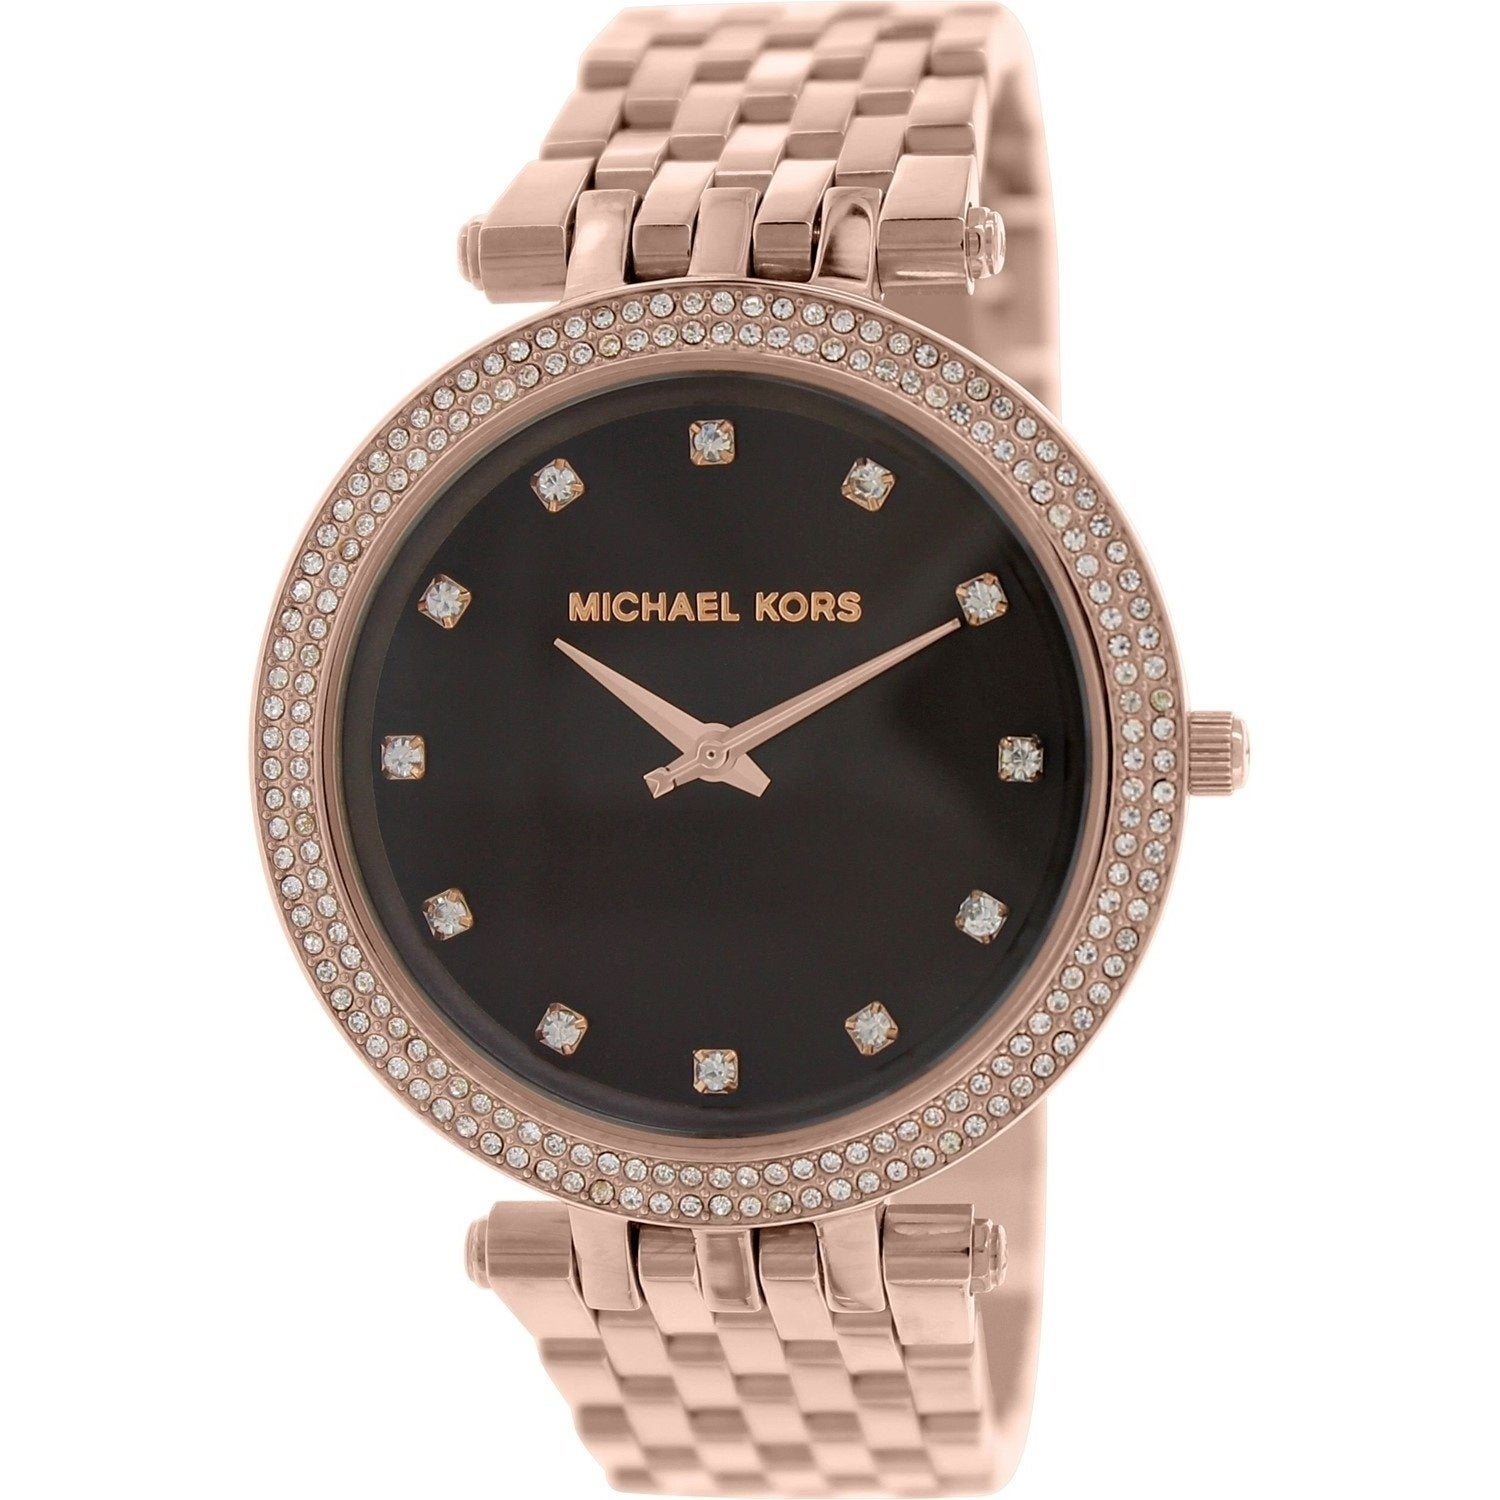 632bbb7ce144 Shop Michael Kors Women s  Darci  Crystal Rose-Tone Stainless Steel Watch -  Free Shipping Today - Overstock - 20742274